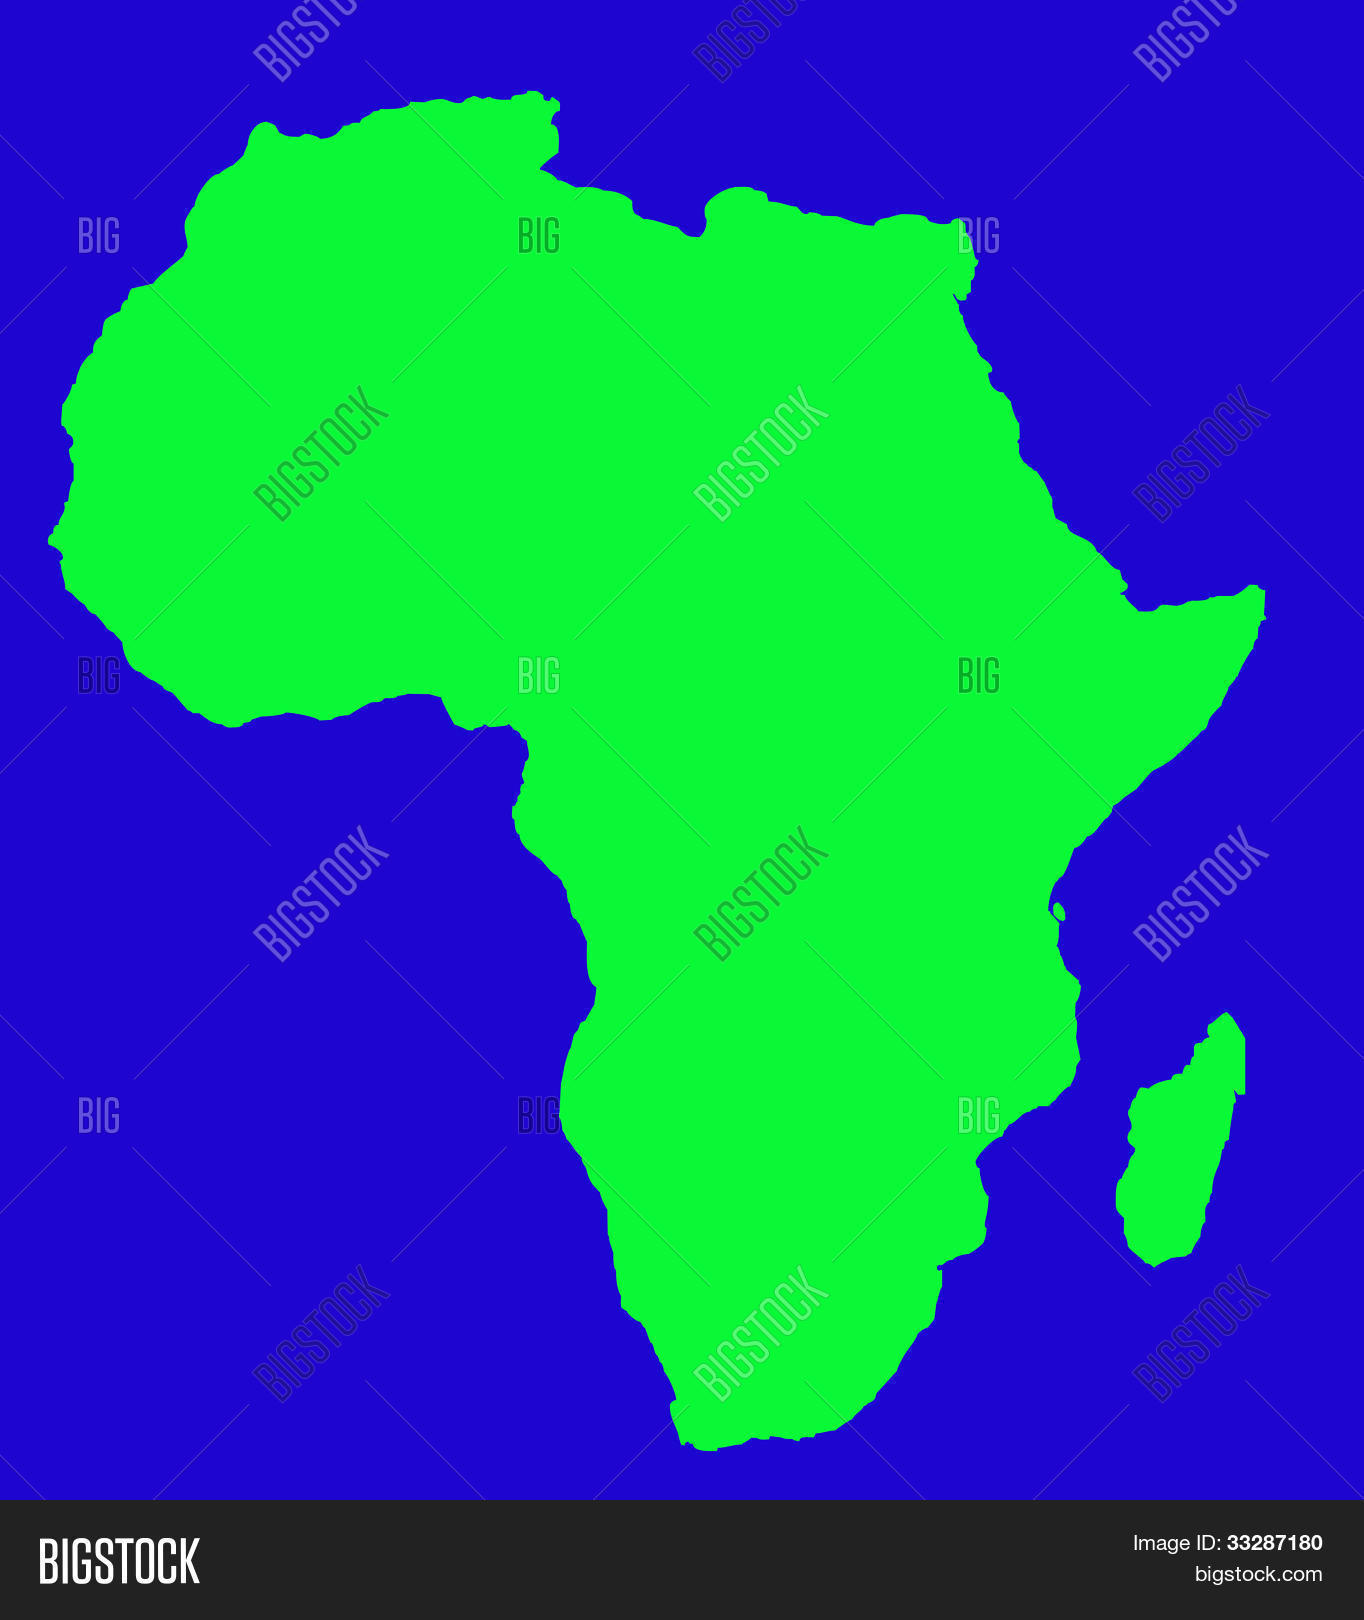 Outline Map Africa Image Photo Free Trial Bigstock